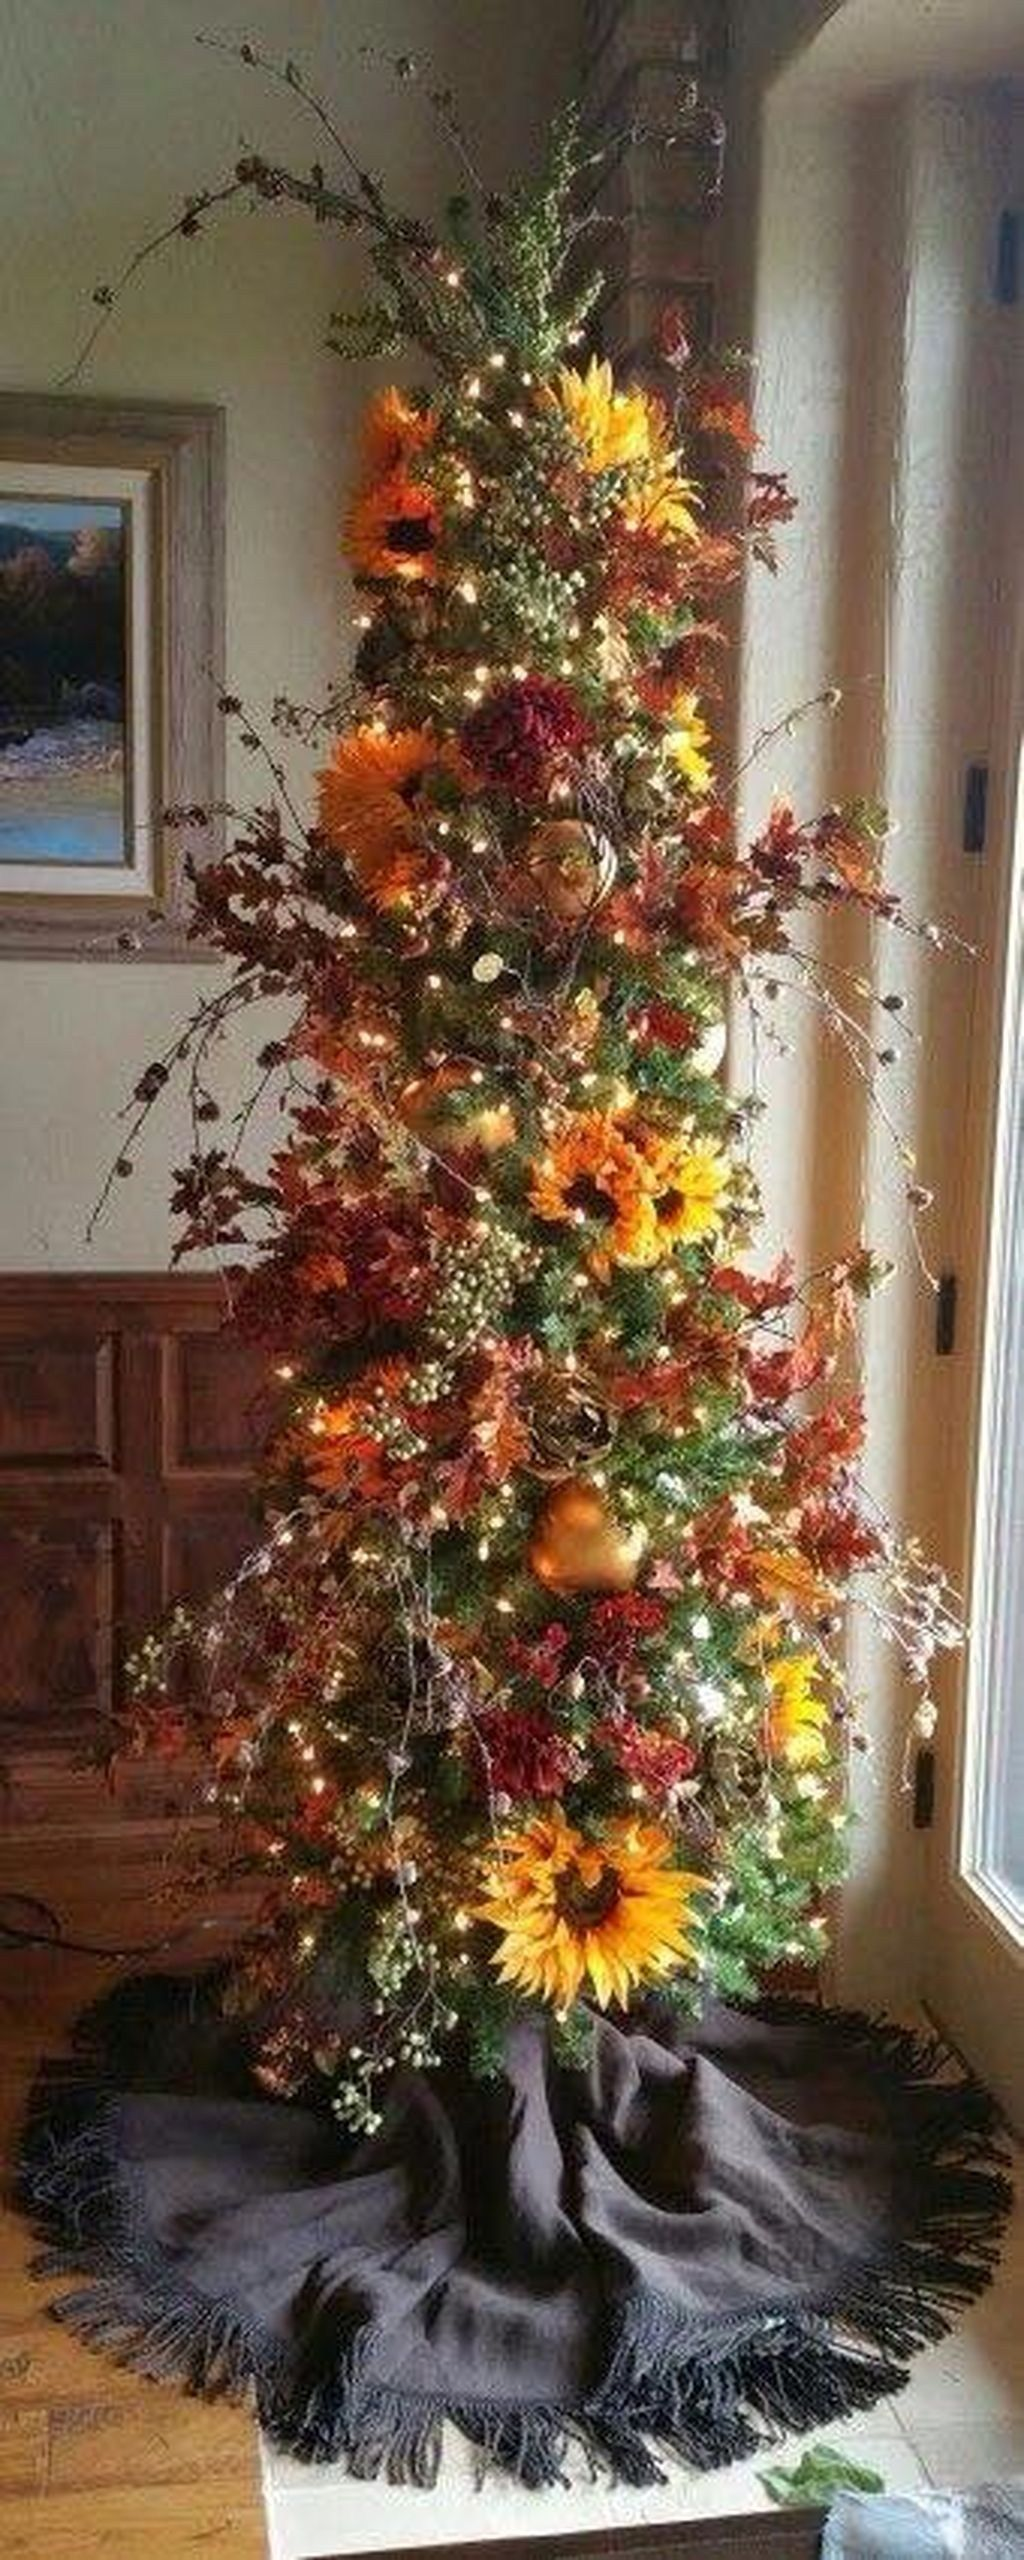 Cute And Colorful Christmas Tree Decoration Ideas To Freshen Up - Colorful christmas tree decor ideas